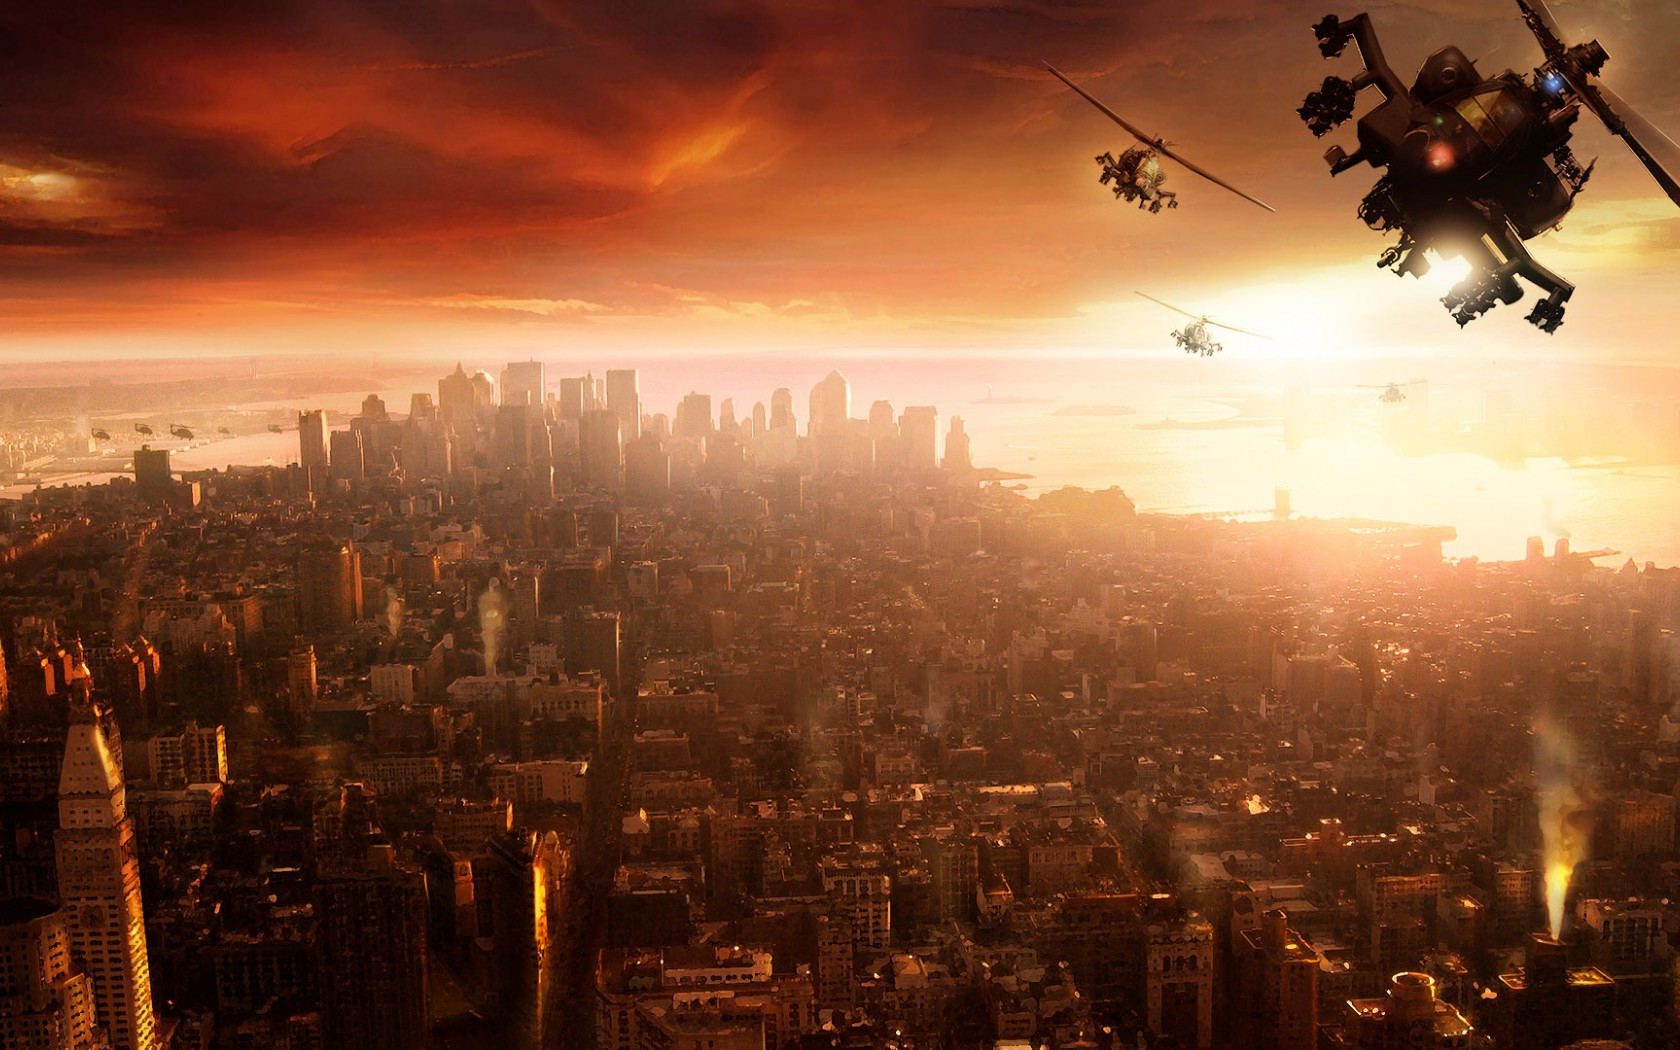 helicopter backgrounds with World Of War War Helicopter Wallpapers 23510 1680x1050 1 on Soft Wallpapers moreover Big as well Eurocopter Ec 120 moreover Mh 53 Pave Low Helicopter Wallpapers moreover A 10 Thunderbolt Wallpaper Hd.